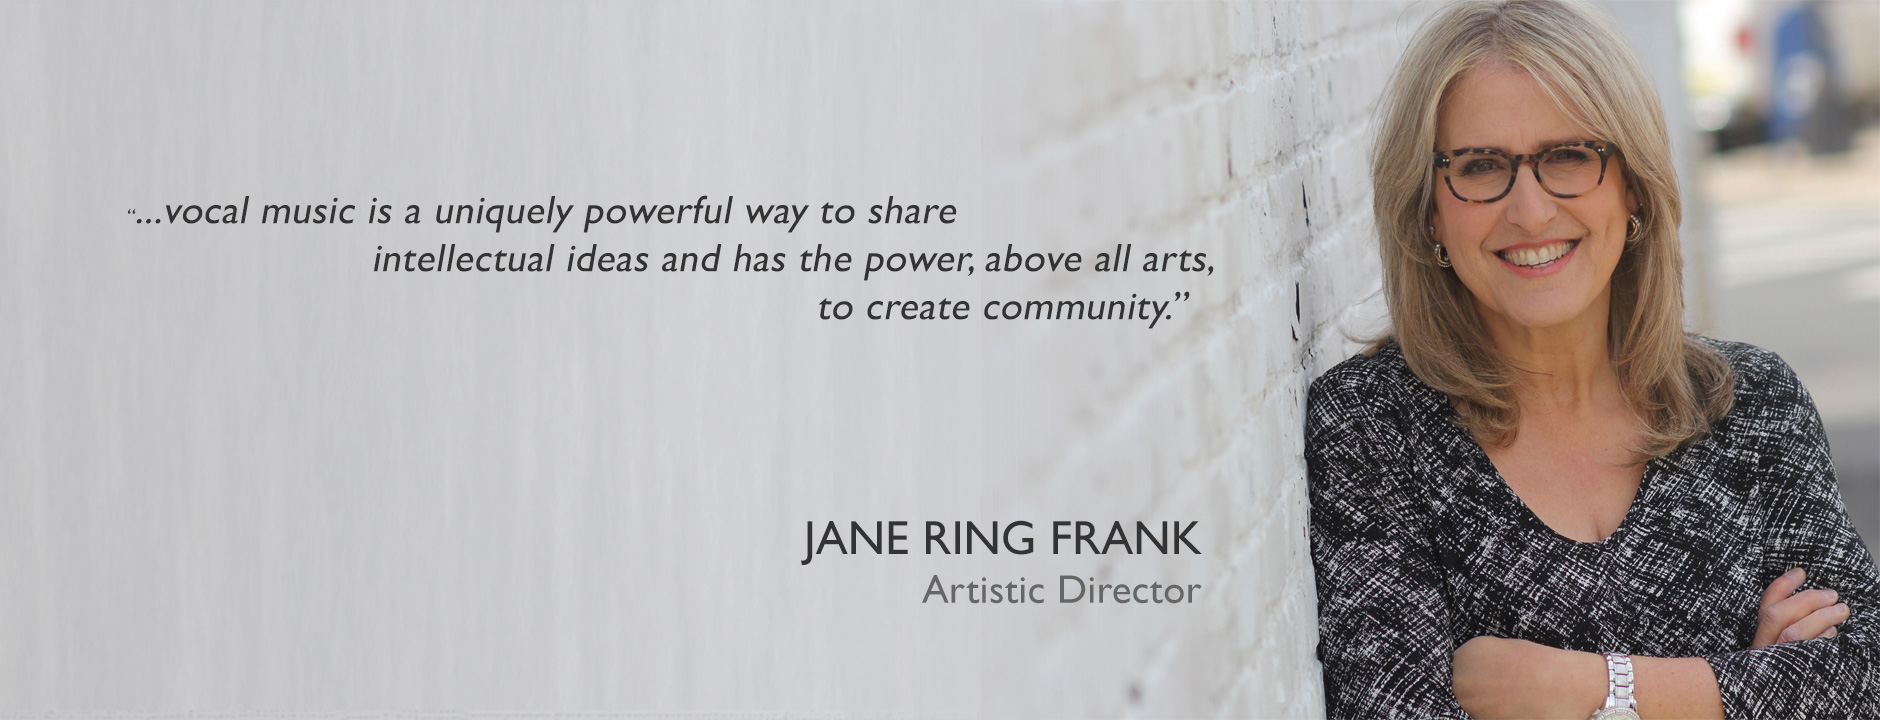 Jane Ring Frank, Artistic Director